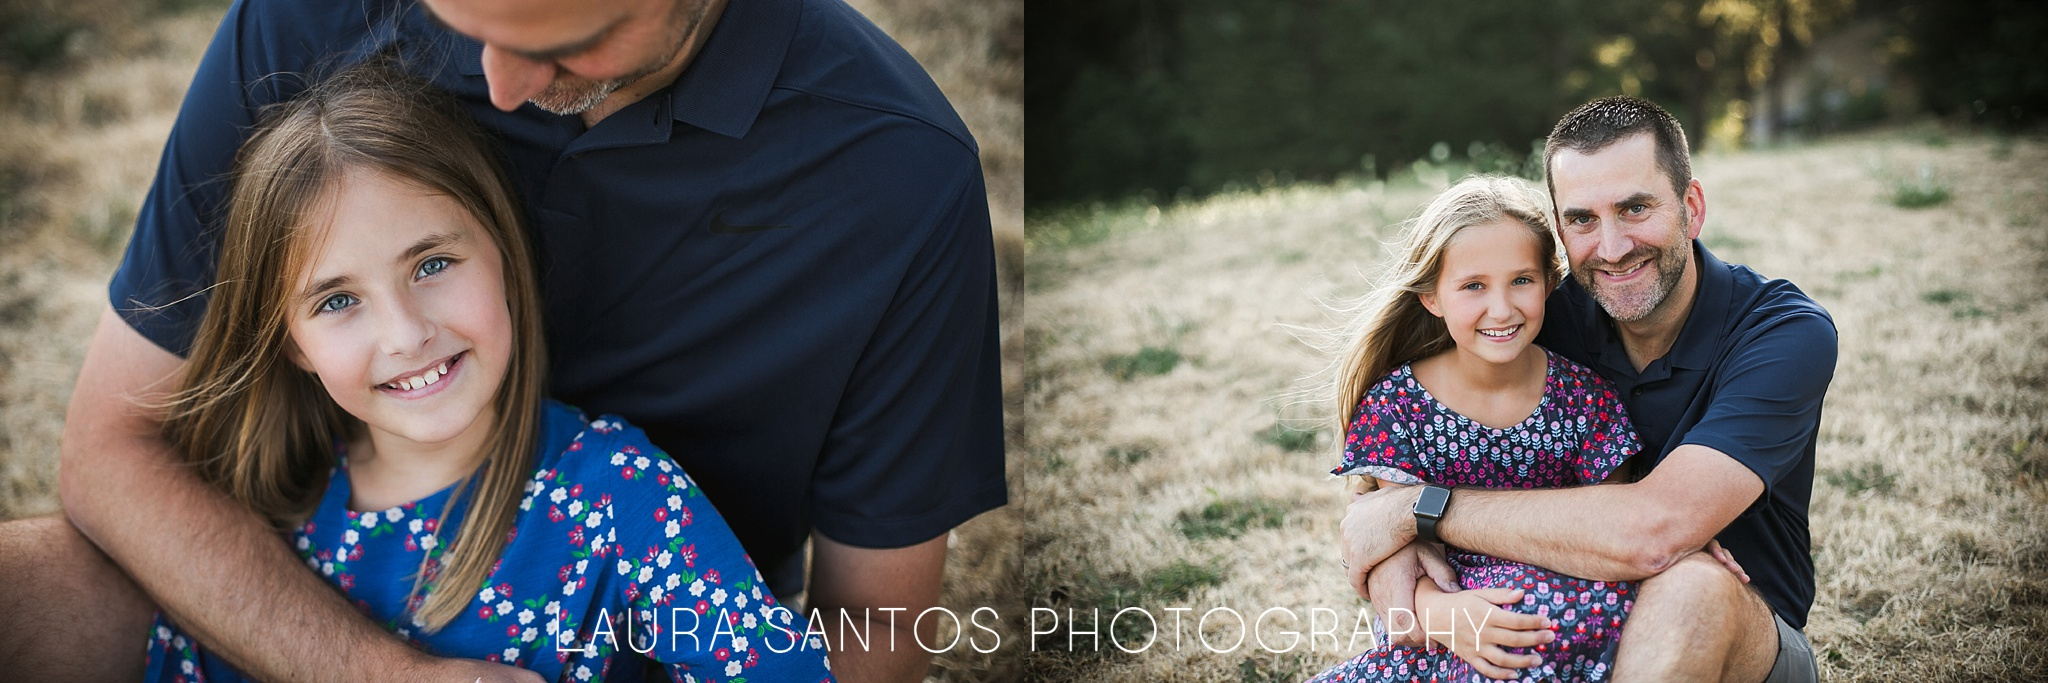 Laura Santos Photography Portland Oregon Family Photographer_0142.jpg